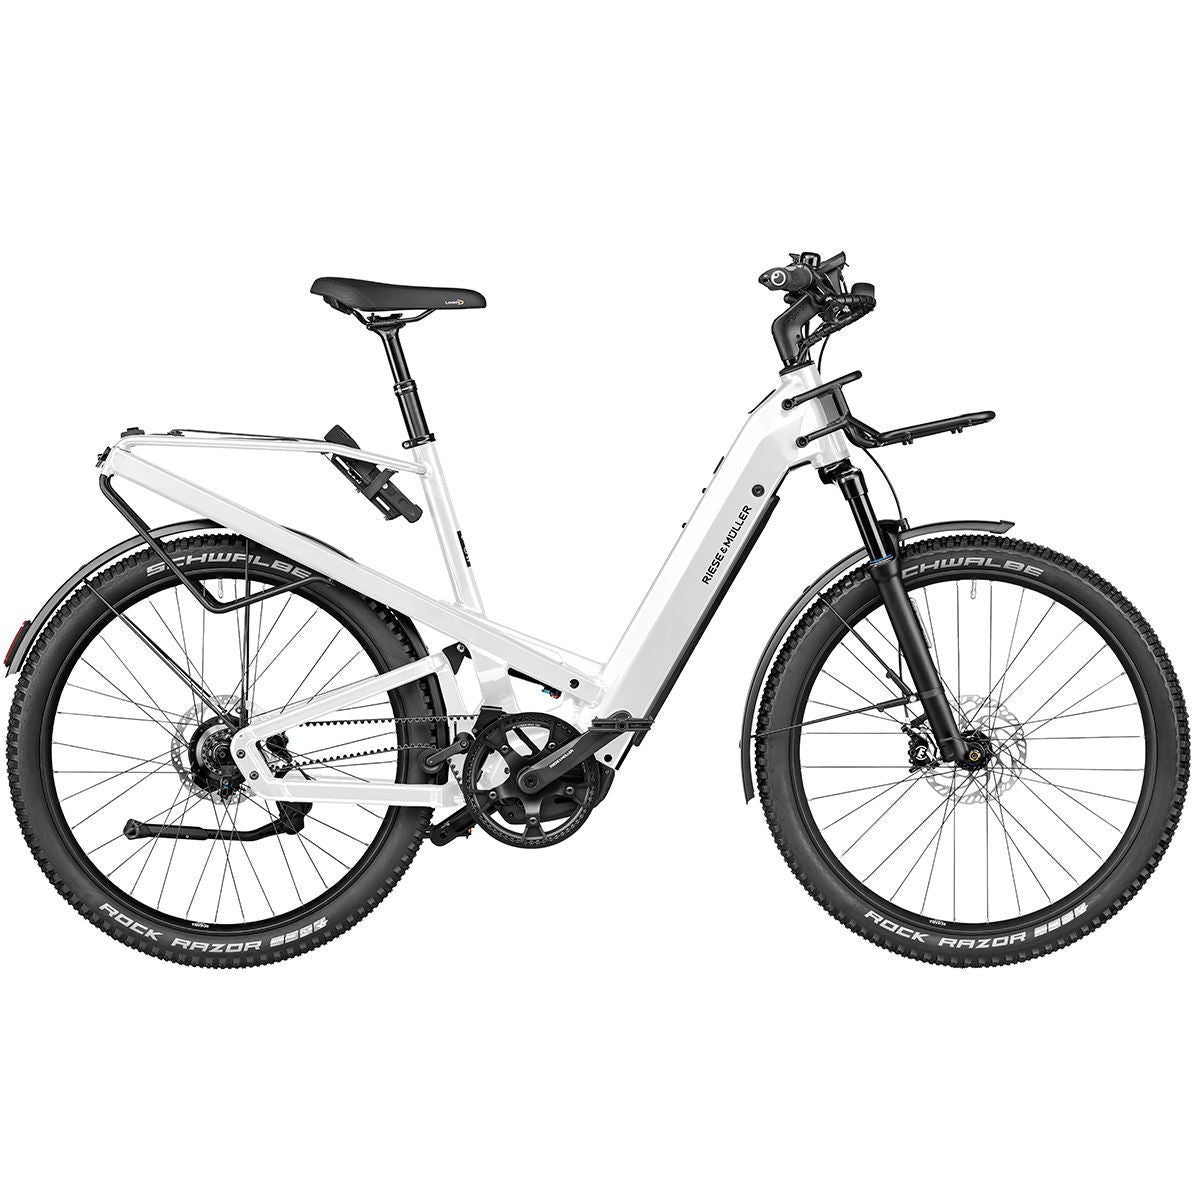 Riese & Muller Homage GT Touring-Oregon E-Bikes